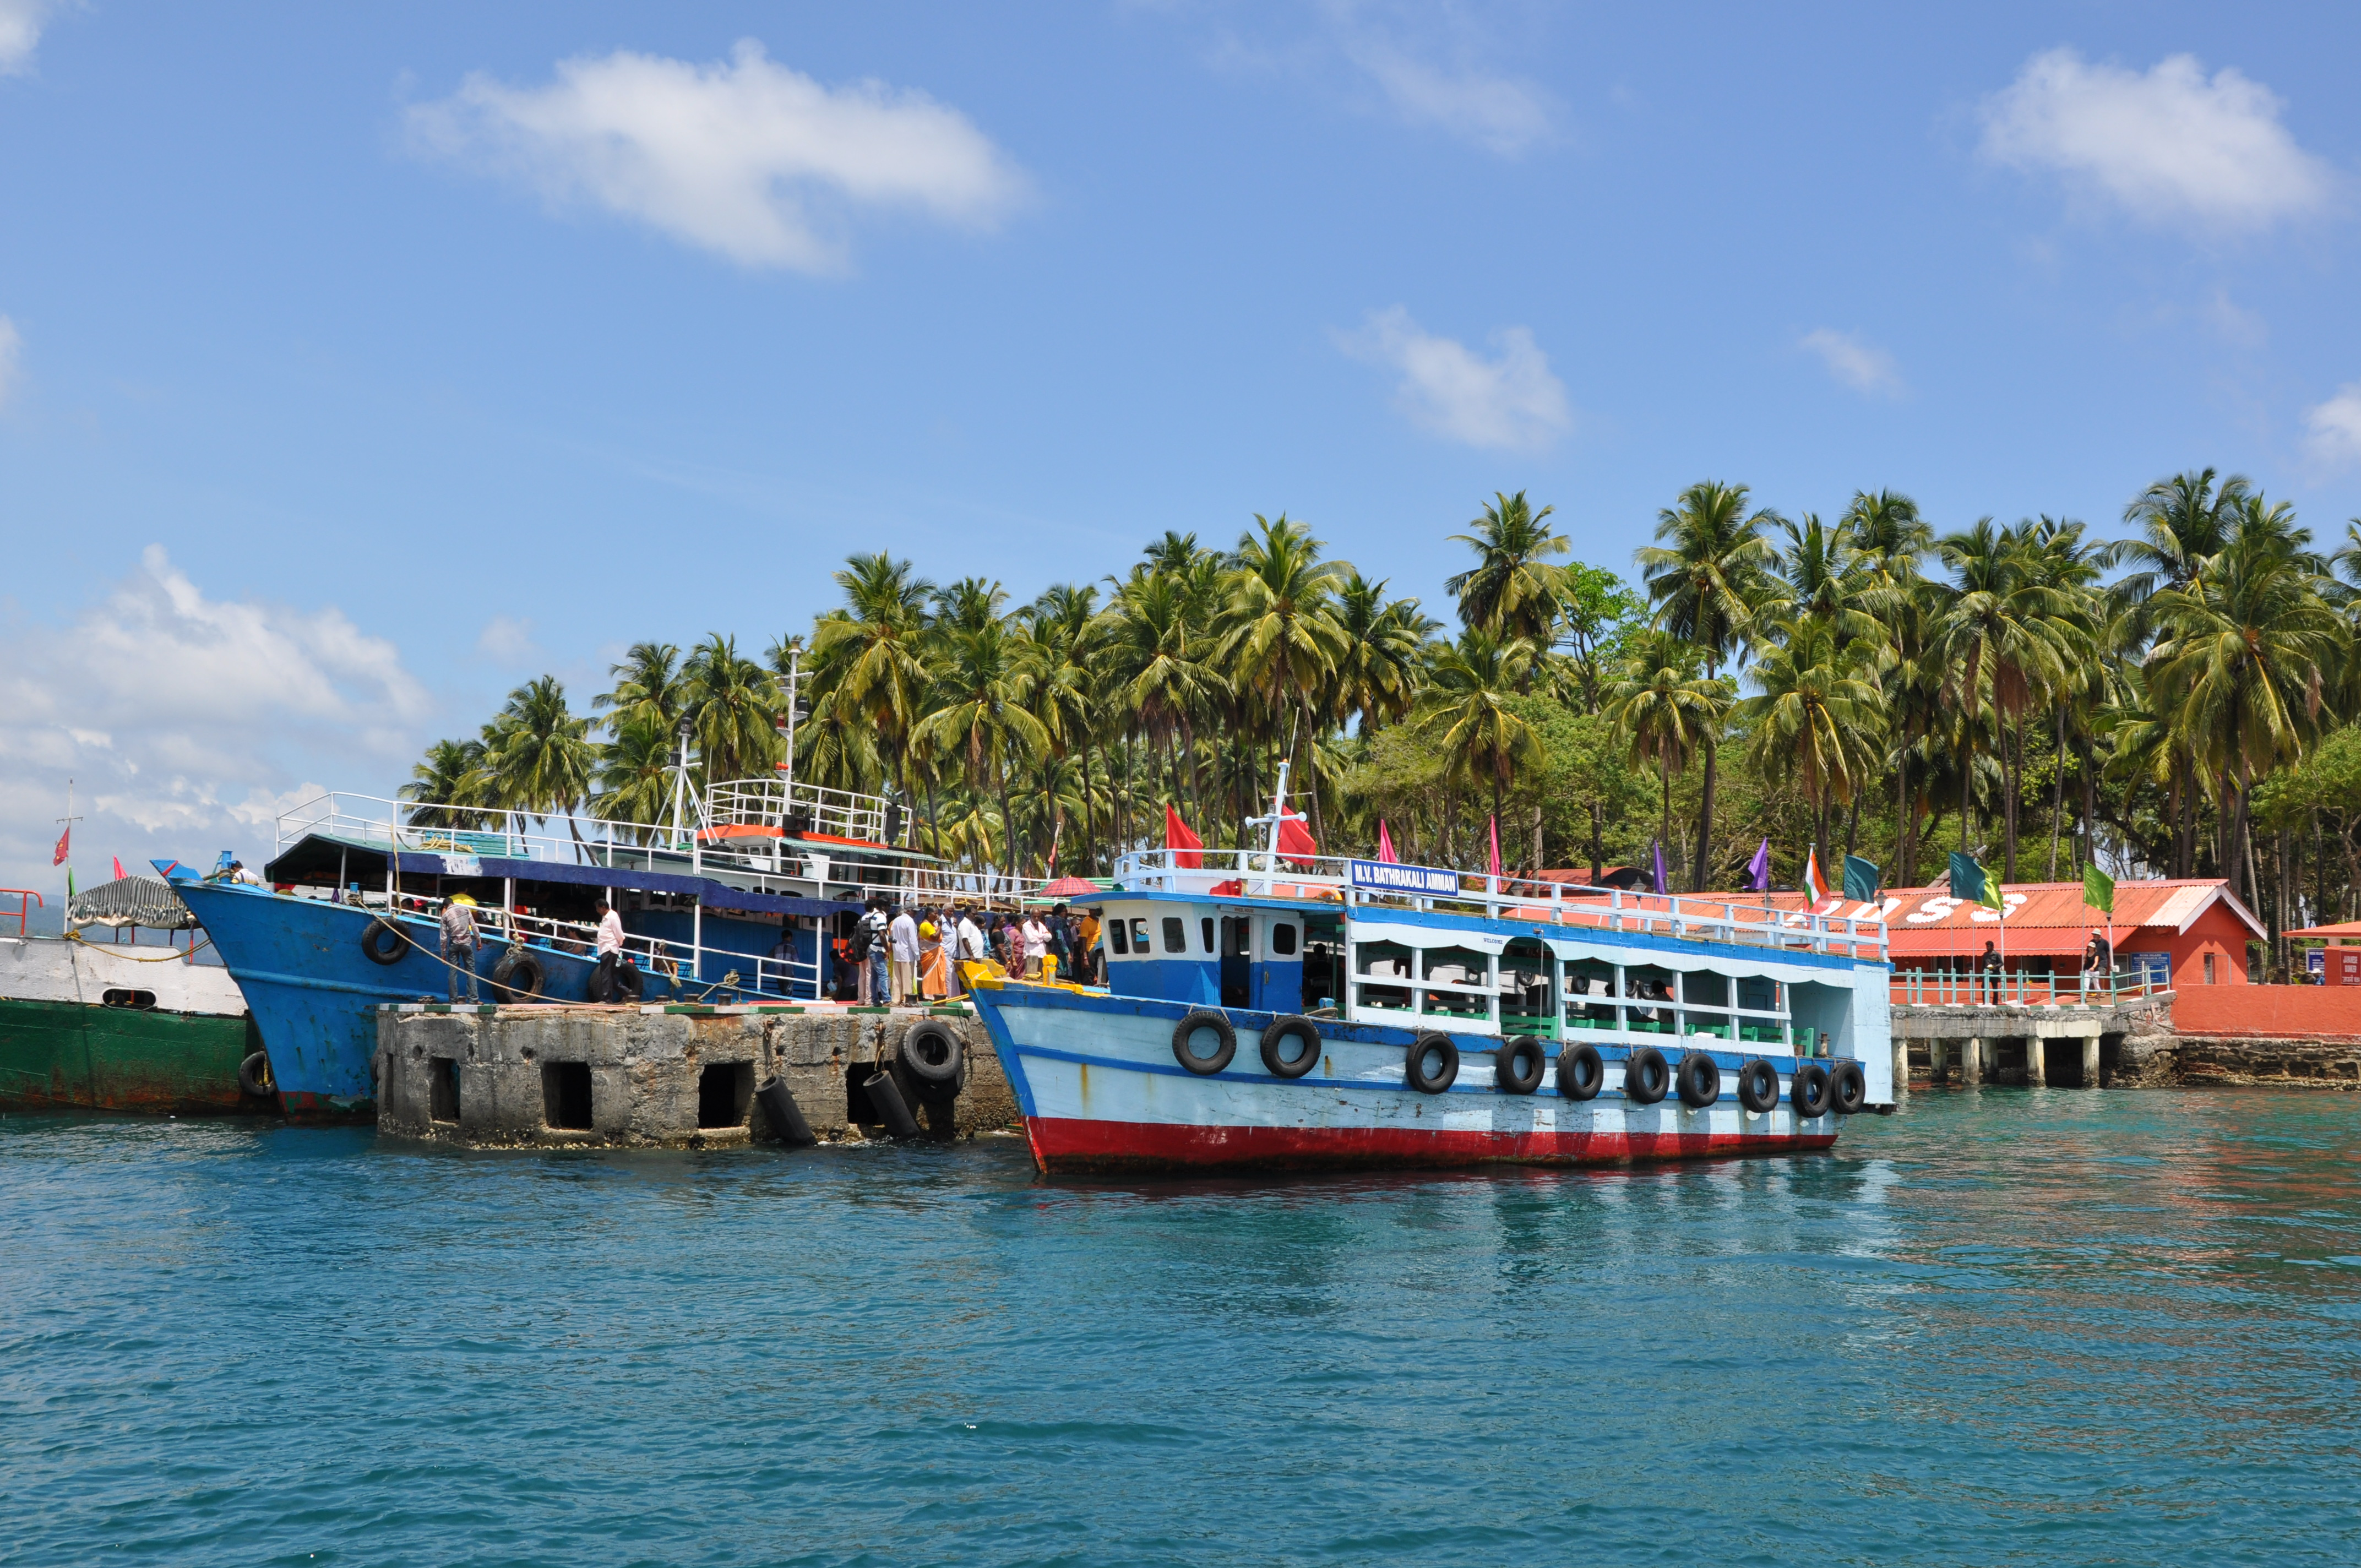 Andaman Islands Tour Packages From Delhi